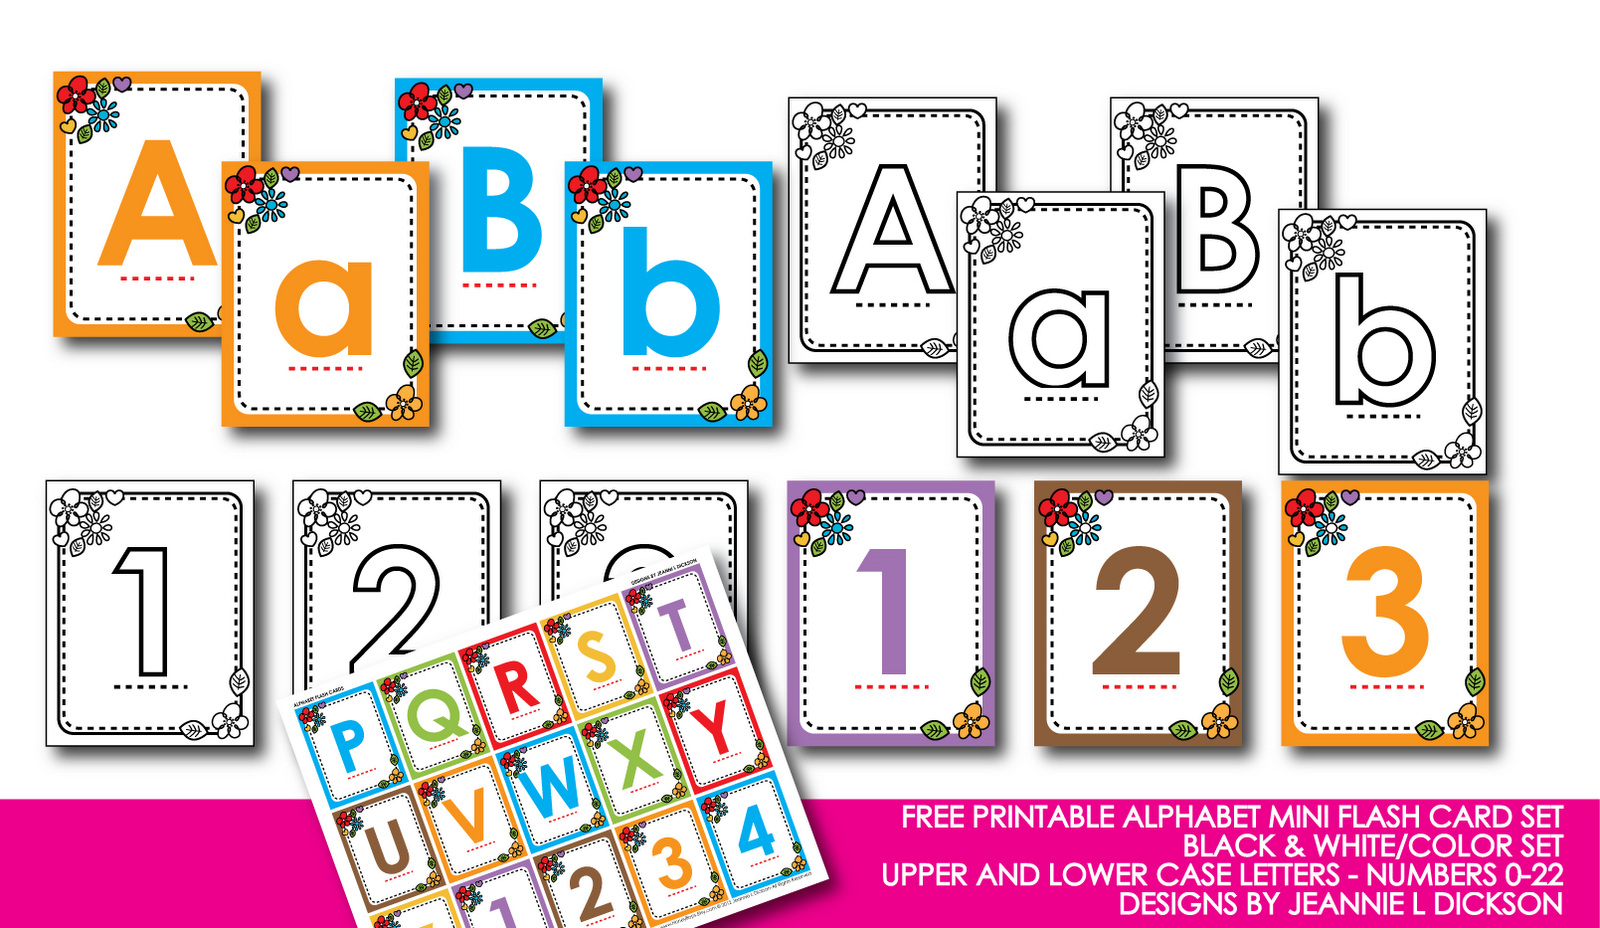 Kindergarten Alphabet Cards | Free Printable Alphabet Mini Flash - Free Printable Abc Flashcards With Pictures